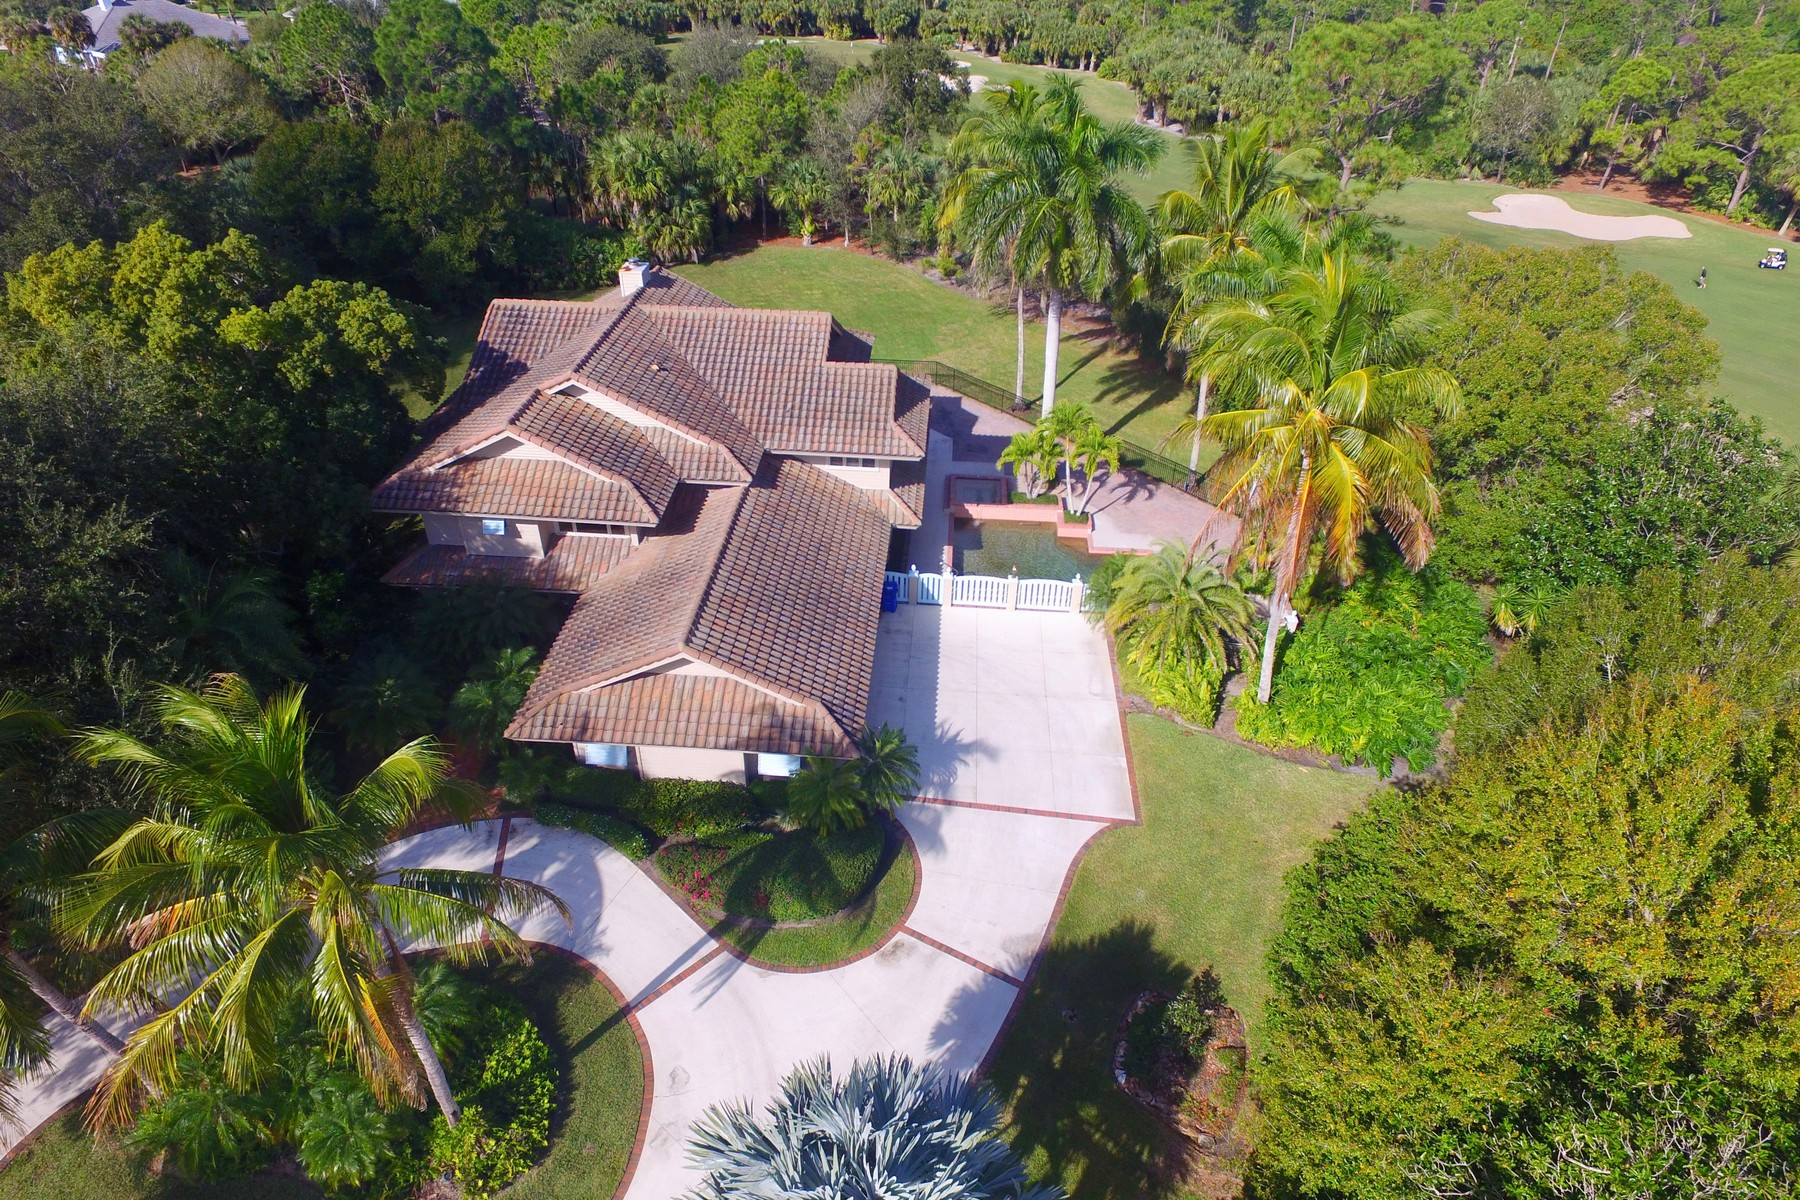 Частный односемейный дом для того Продажа на Timeless and Inviting Golf Course Pool Home with Captivating Views! 5885 Turnberry Lane Vero Beach, Флорида 32967 Соединенные Штаты